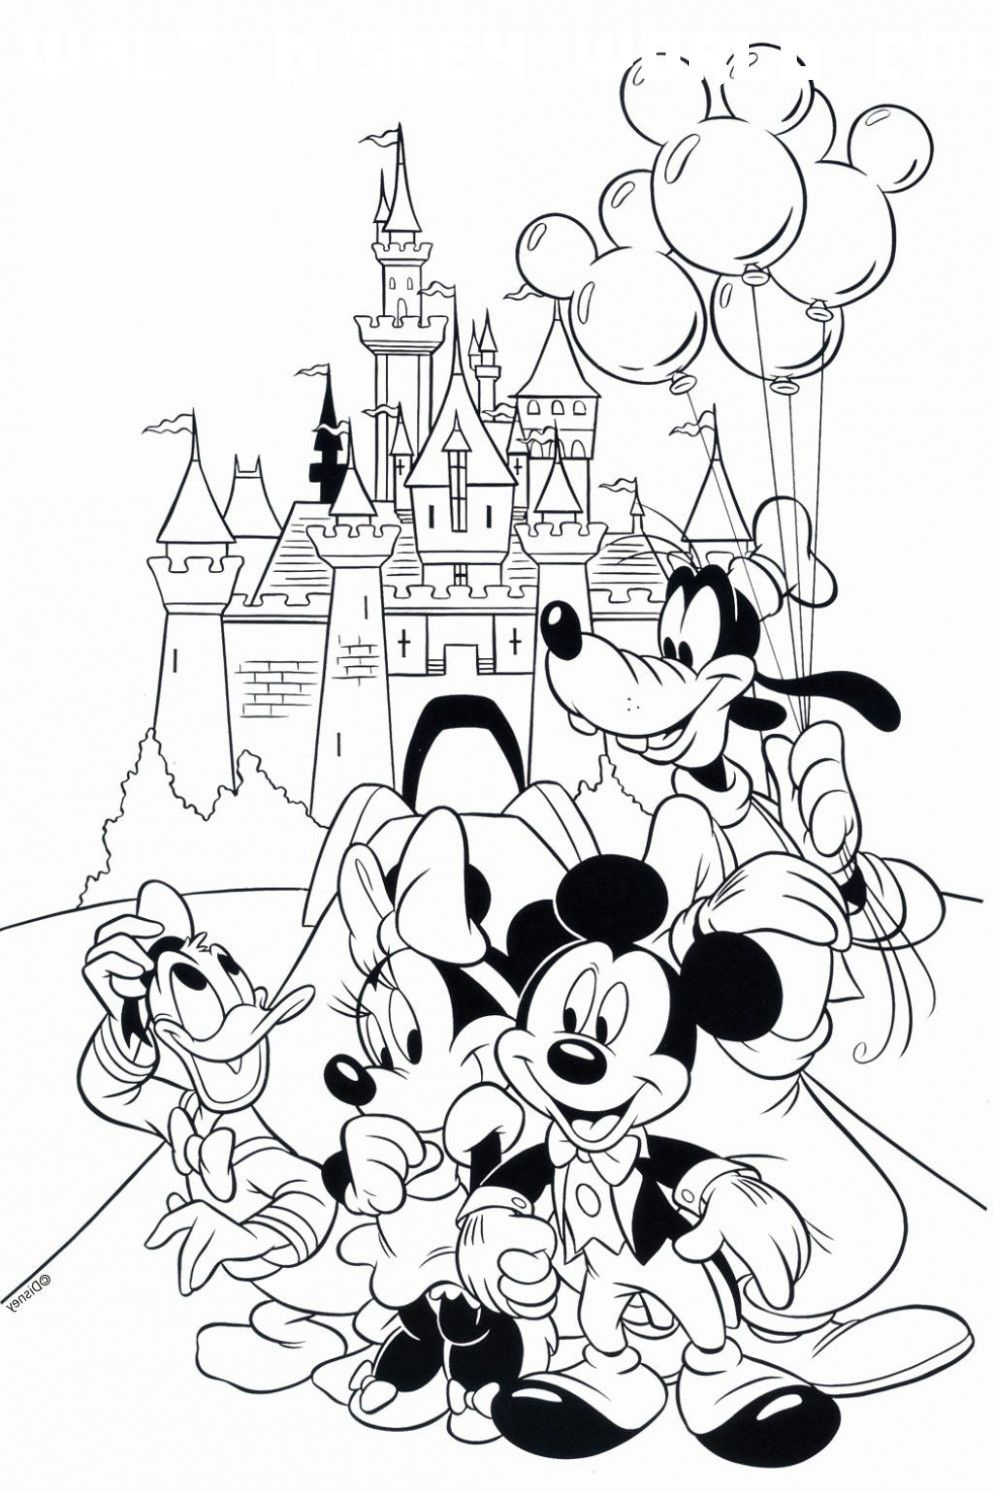 6 Walt Disney World Coloring Pages in 2020 | Mickey mouse ...